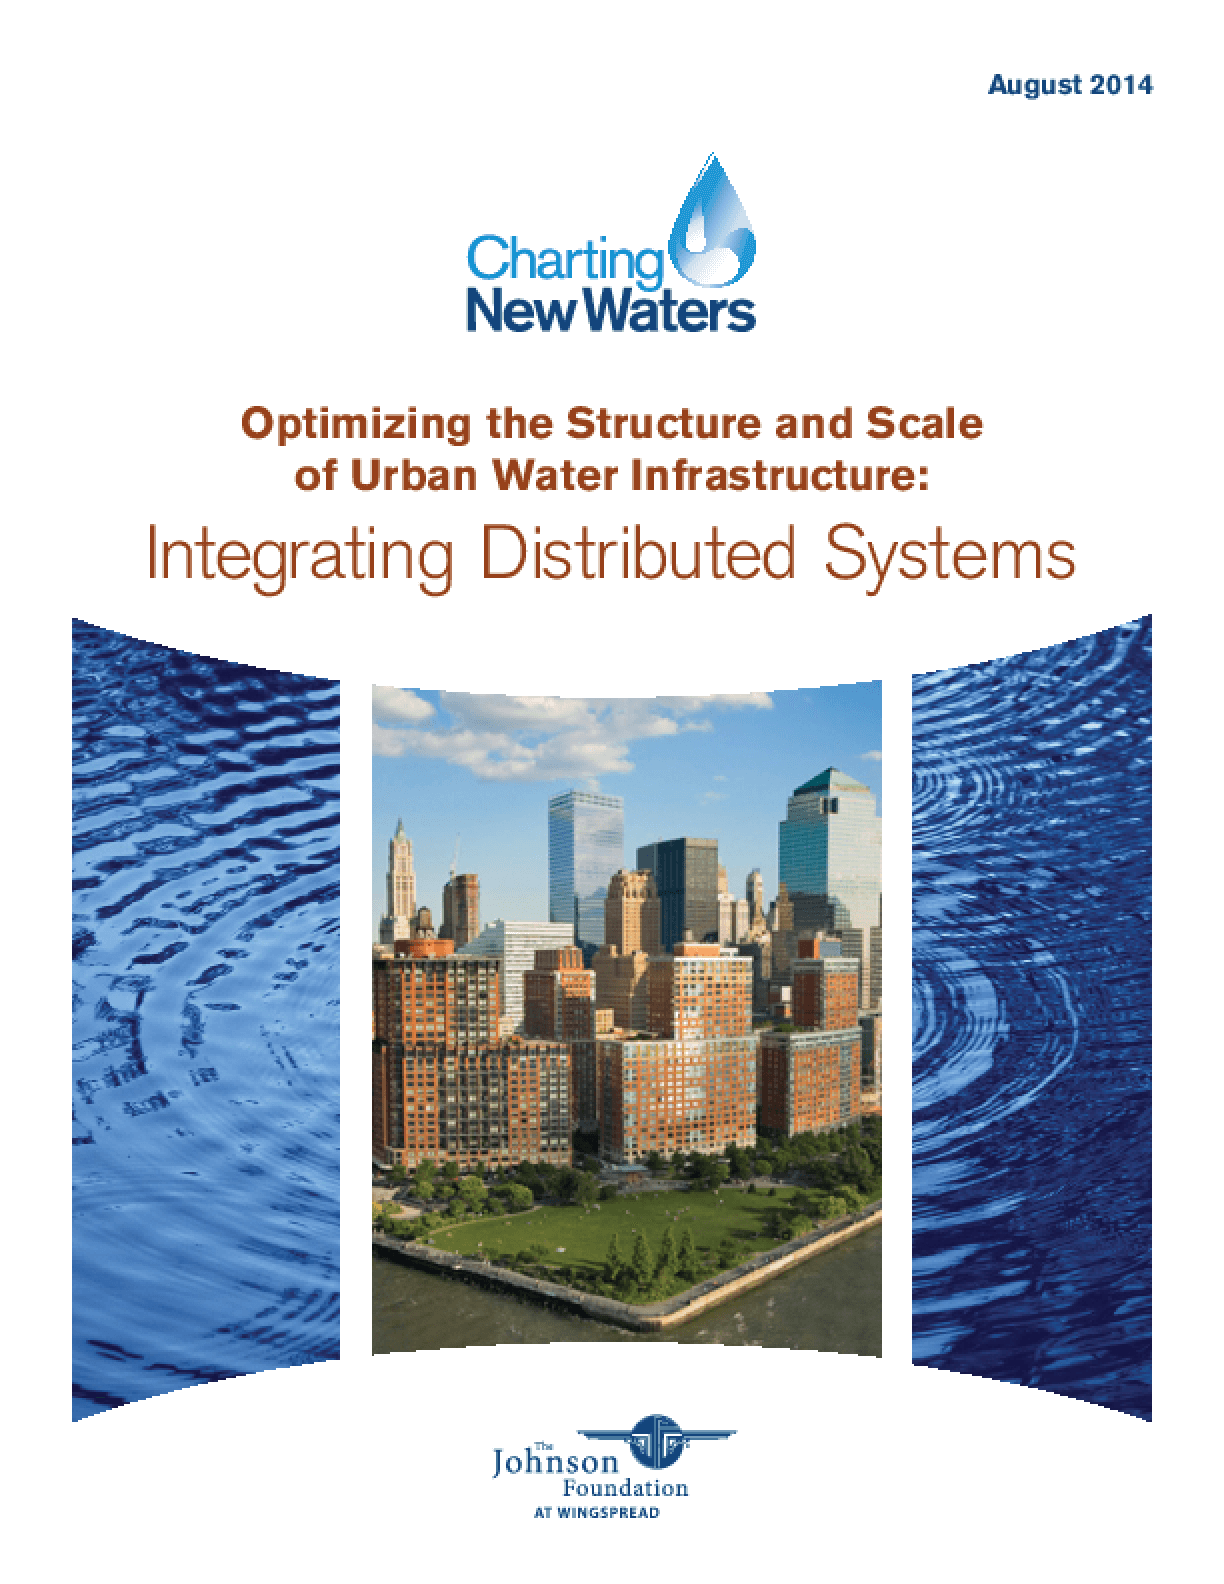 Optimizing the Structure and Scale of Urban Water Infrastructure: Integrating Distributed Systems